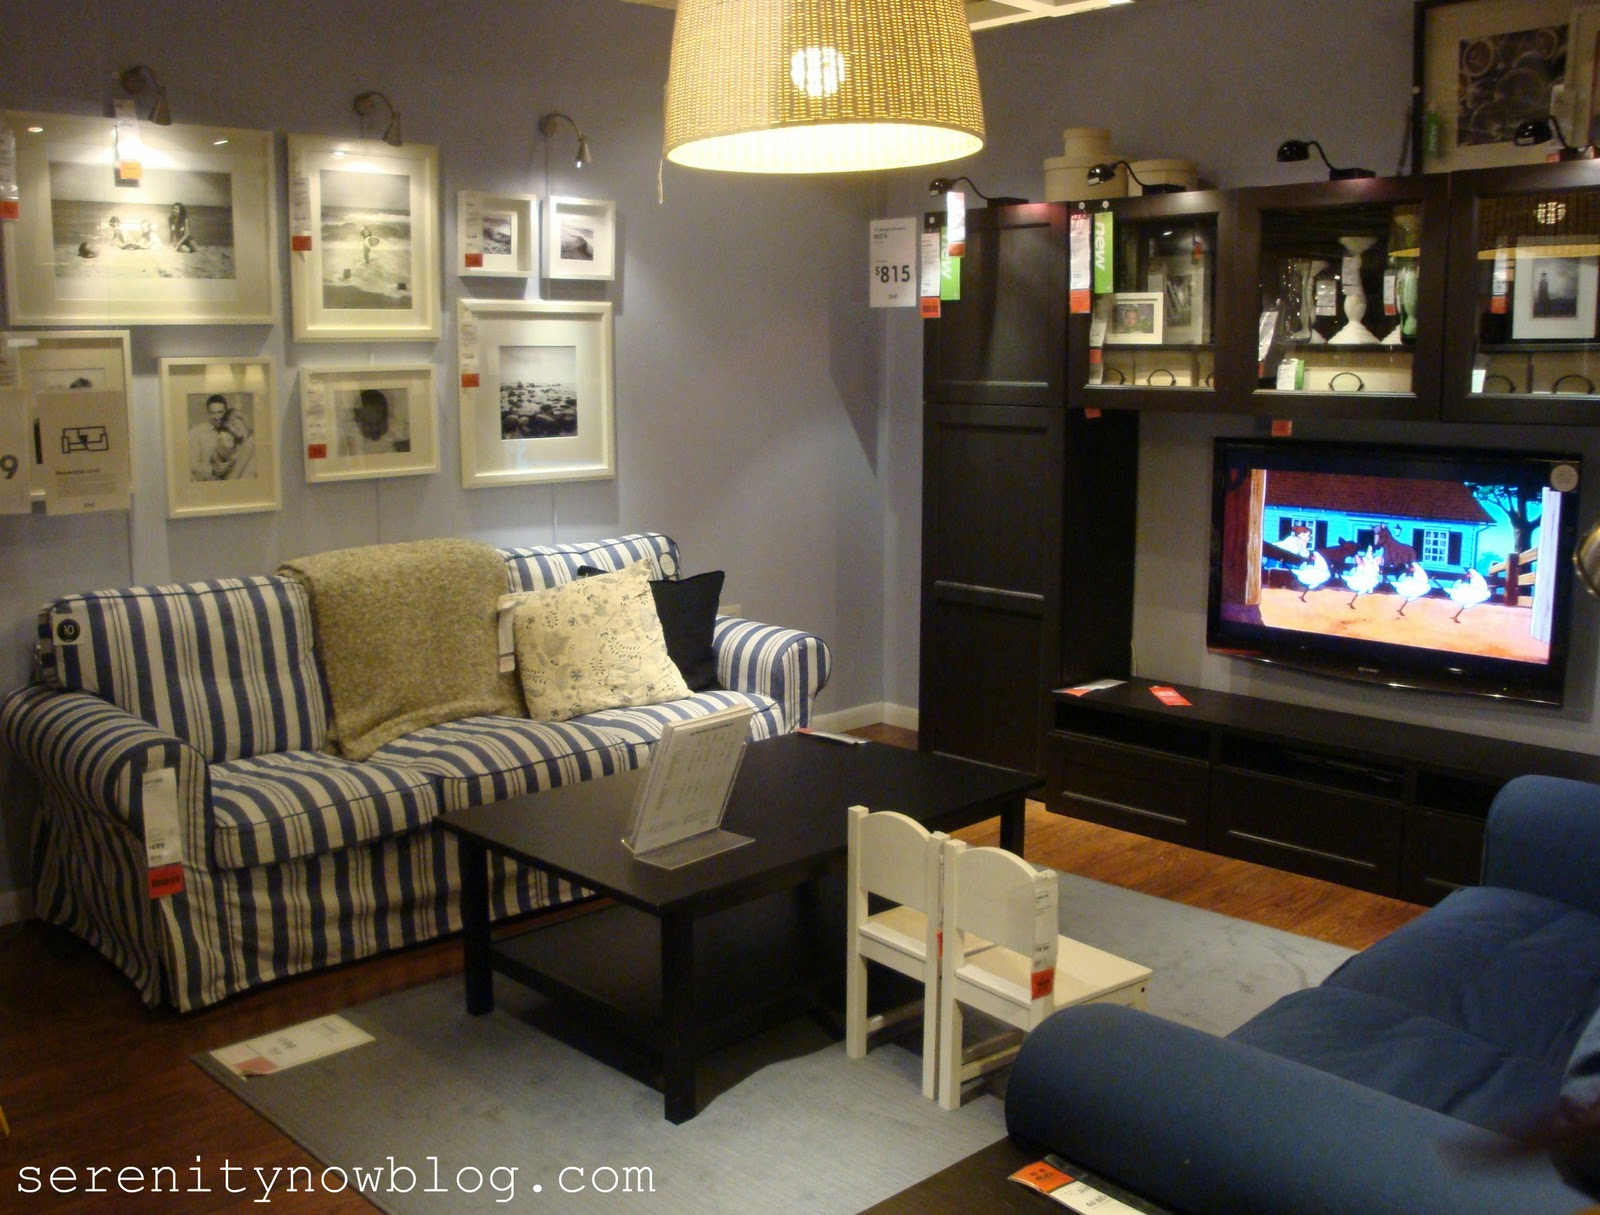 Serenity now ikea decorating inspiration our shopping fun Home interior blogs